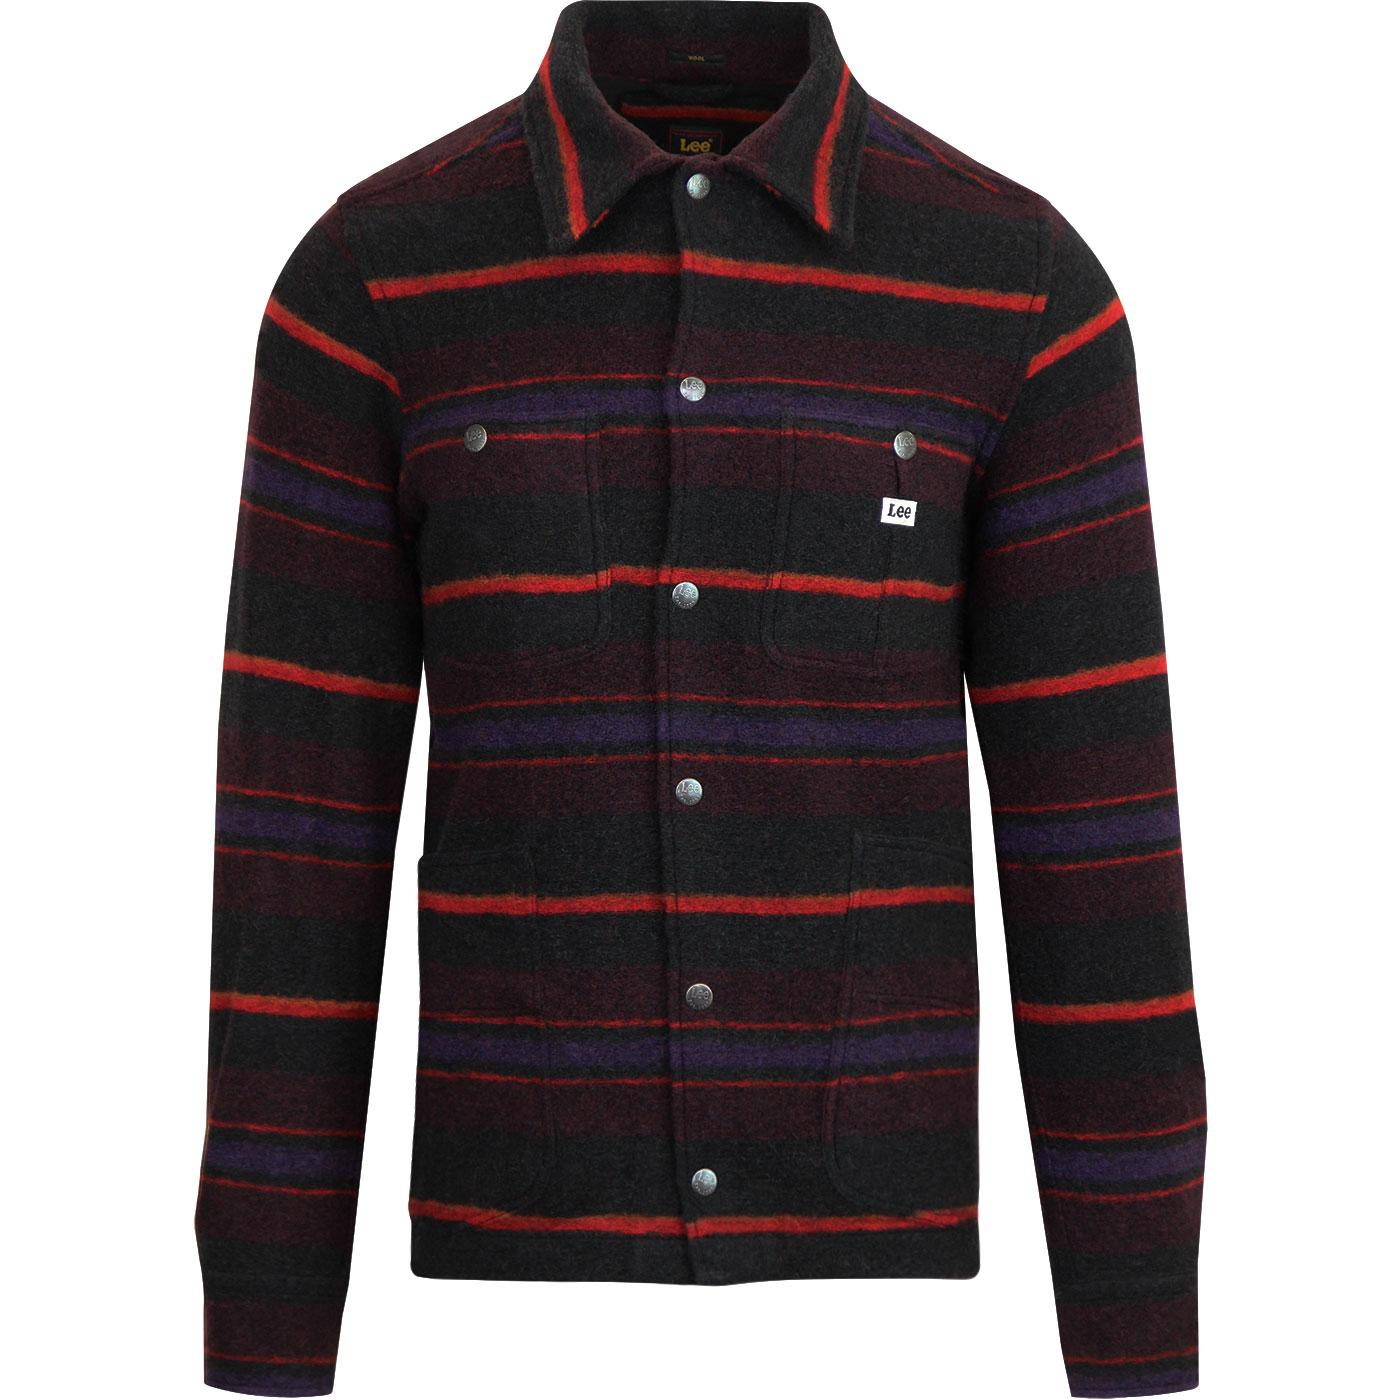 Loco LEE Men's Retro Western Stripe Wool Overshirt